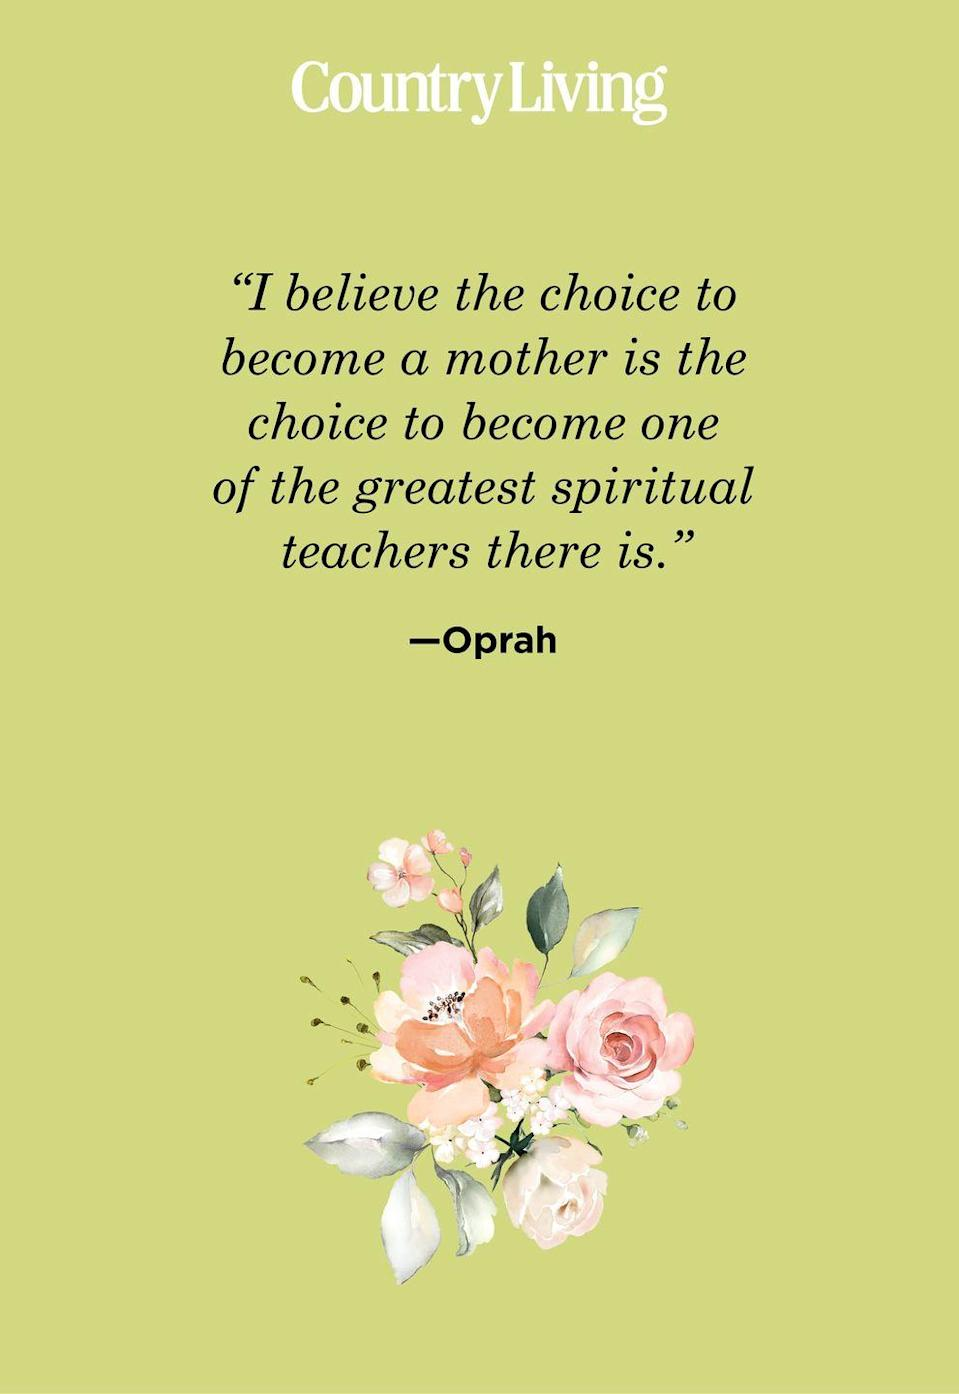 "<p>""I believe the choice to become a mother is the choice to become one of the greatest spiritual teachers there is."" </p>"